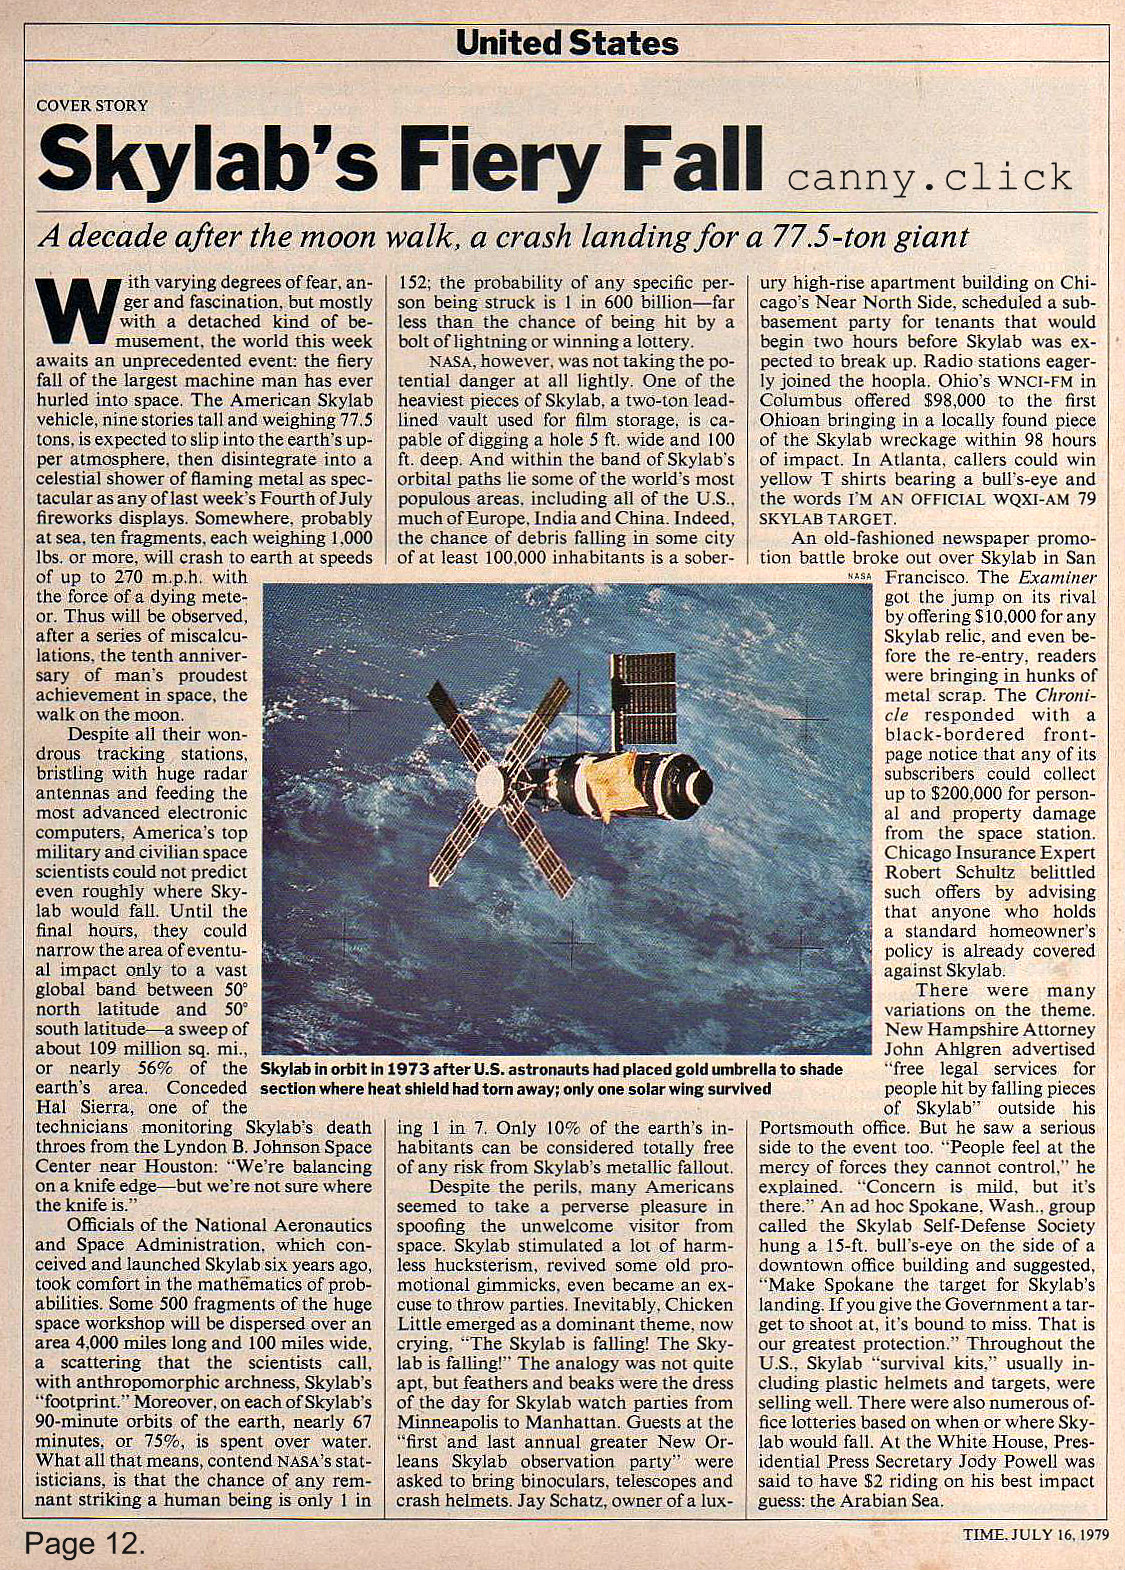 Skylab article, Part 1